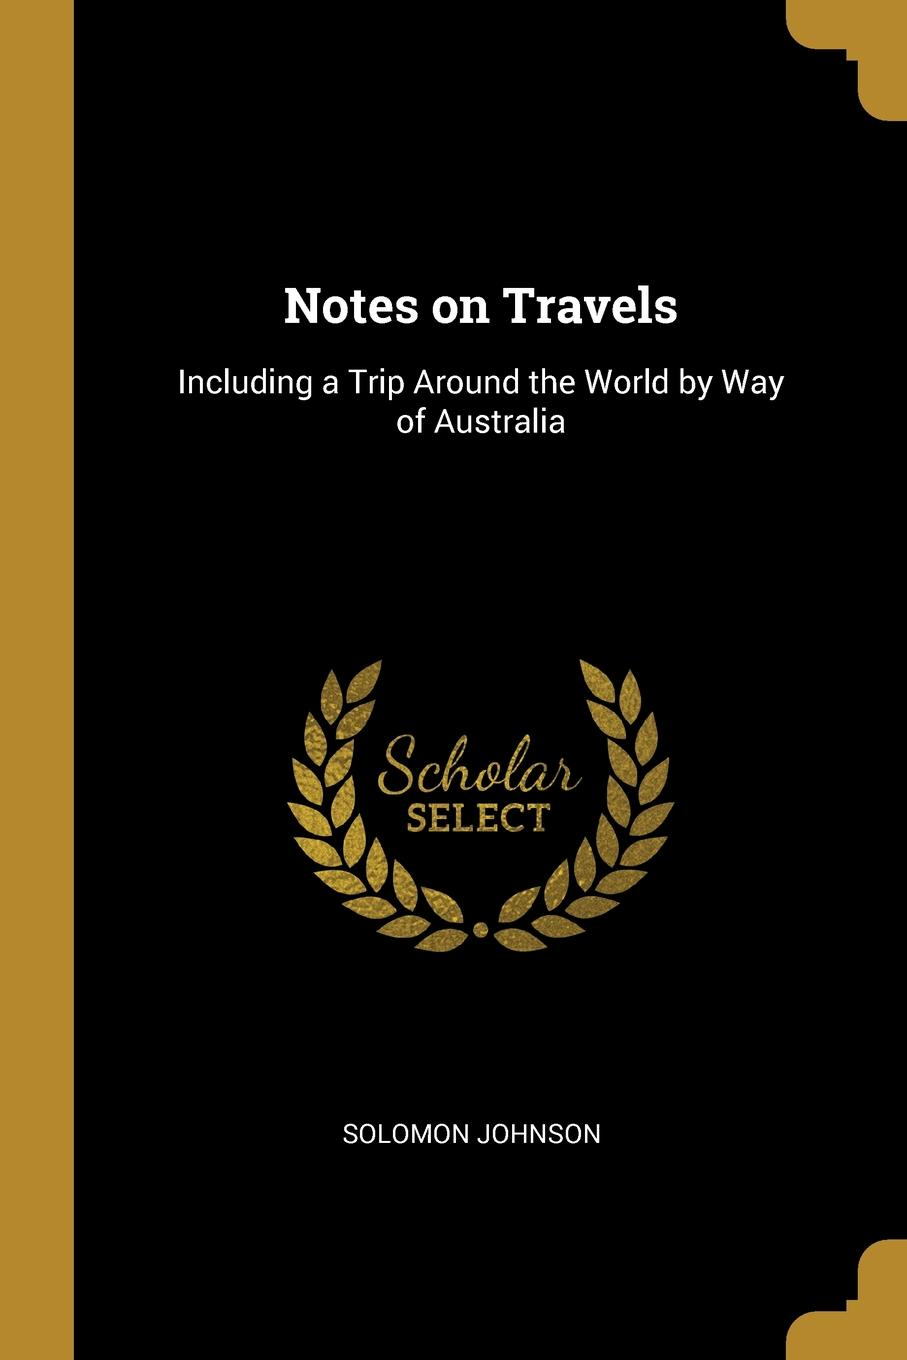 Solomon Johnson. Notes on Travels. Including a Trip Around the World by Way of Australia